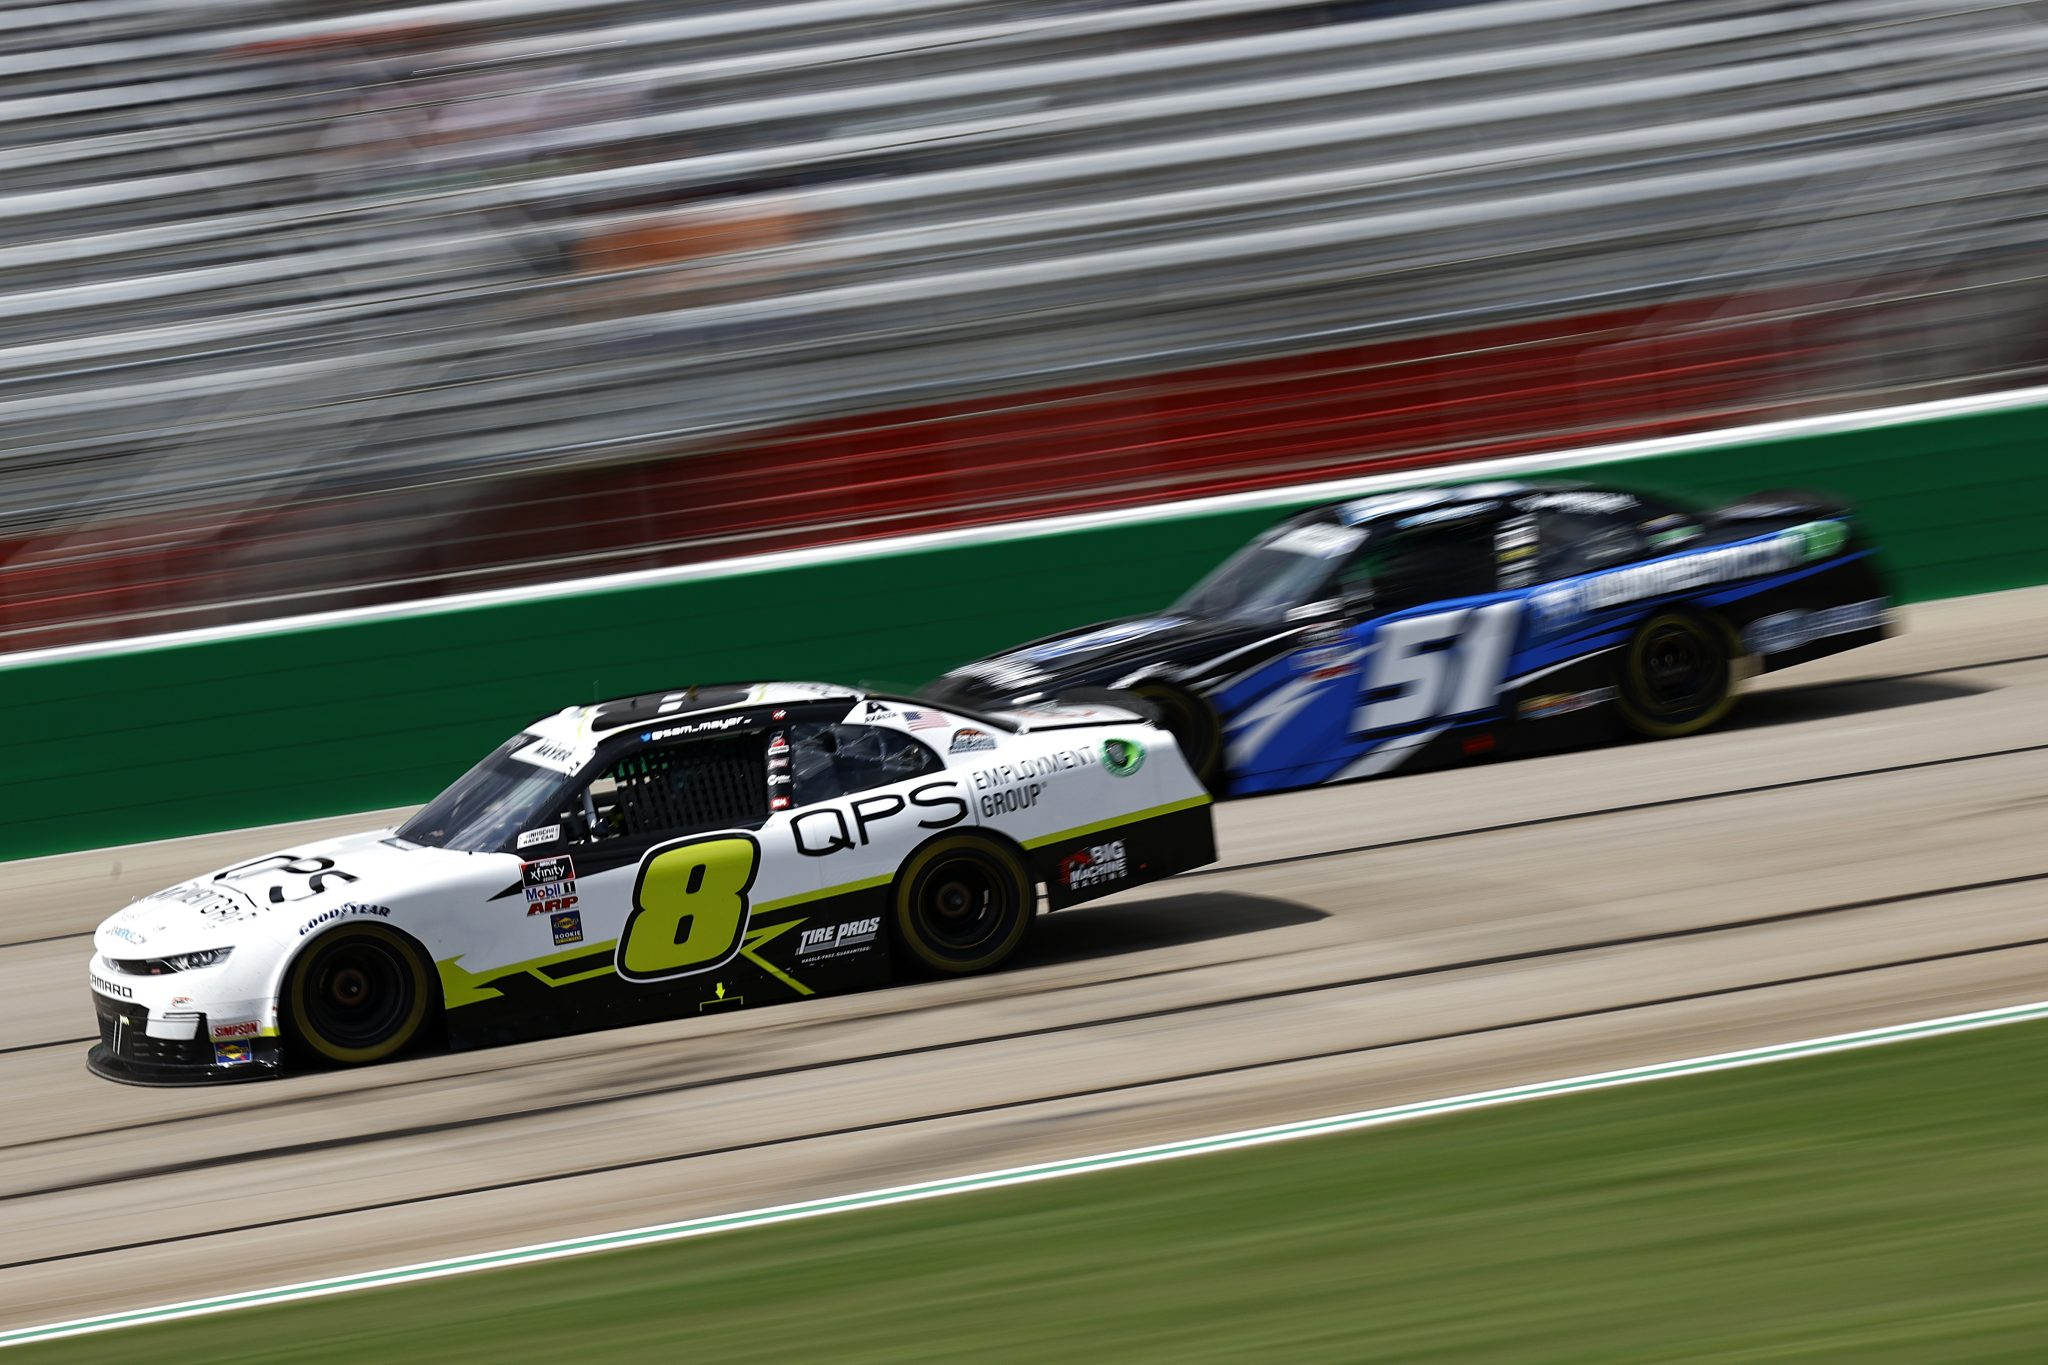 HAMPTON, GEORGIA - JULY 10: Sam Mayer, driver of the #8 QPS Equipment Group Chevrolet, and Jeremy Clements, driver of the #51 All South Electric Chevrolet, race during the NASCAR Xfinity Series Credit Karma Money 250 at Atlanta Motor Speedway on July 10, 2021 in Hampton, Georgia. (Photo by Jared C. Tilton/Getty Images) | Getty Images